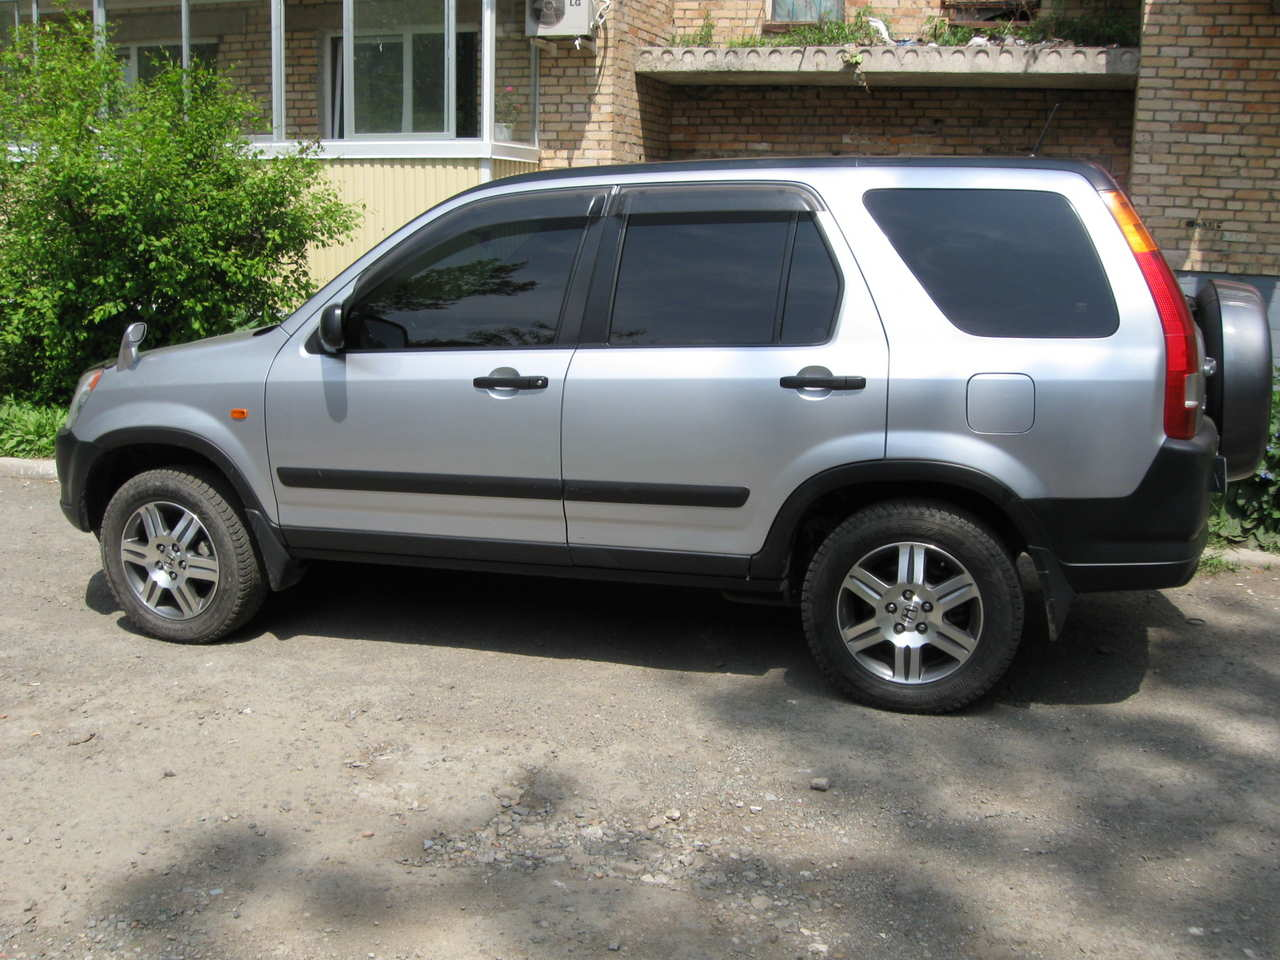 used 2002 honda cr v photos 1998cc gasoline automatic for sale. Black Bedroom Furniture Sets. Home Design Ideas